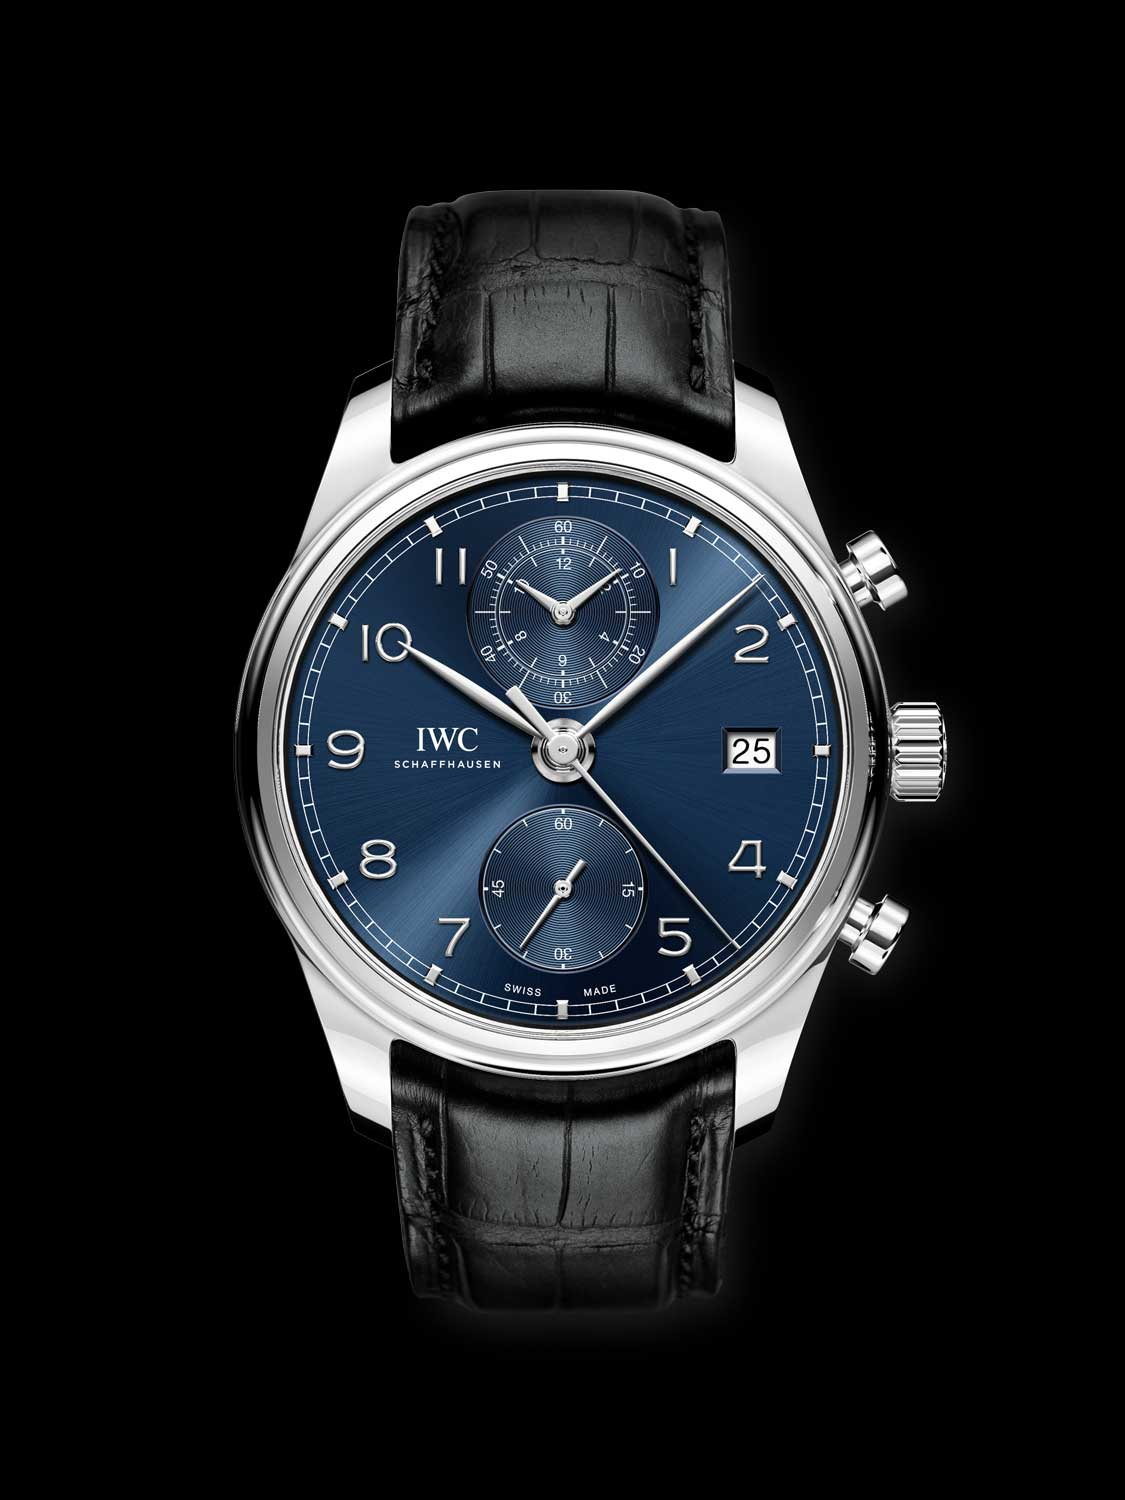 Portugieser Chronograph Classic stainless steel with a blue dial (ref. IW390303)